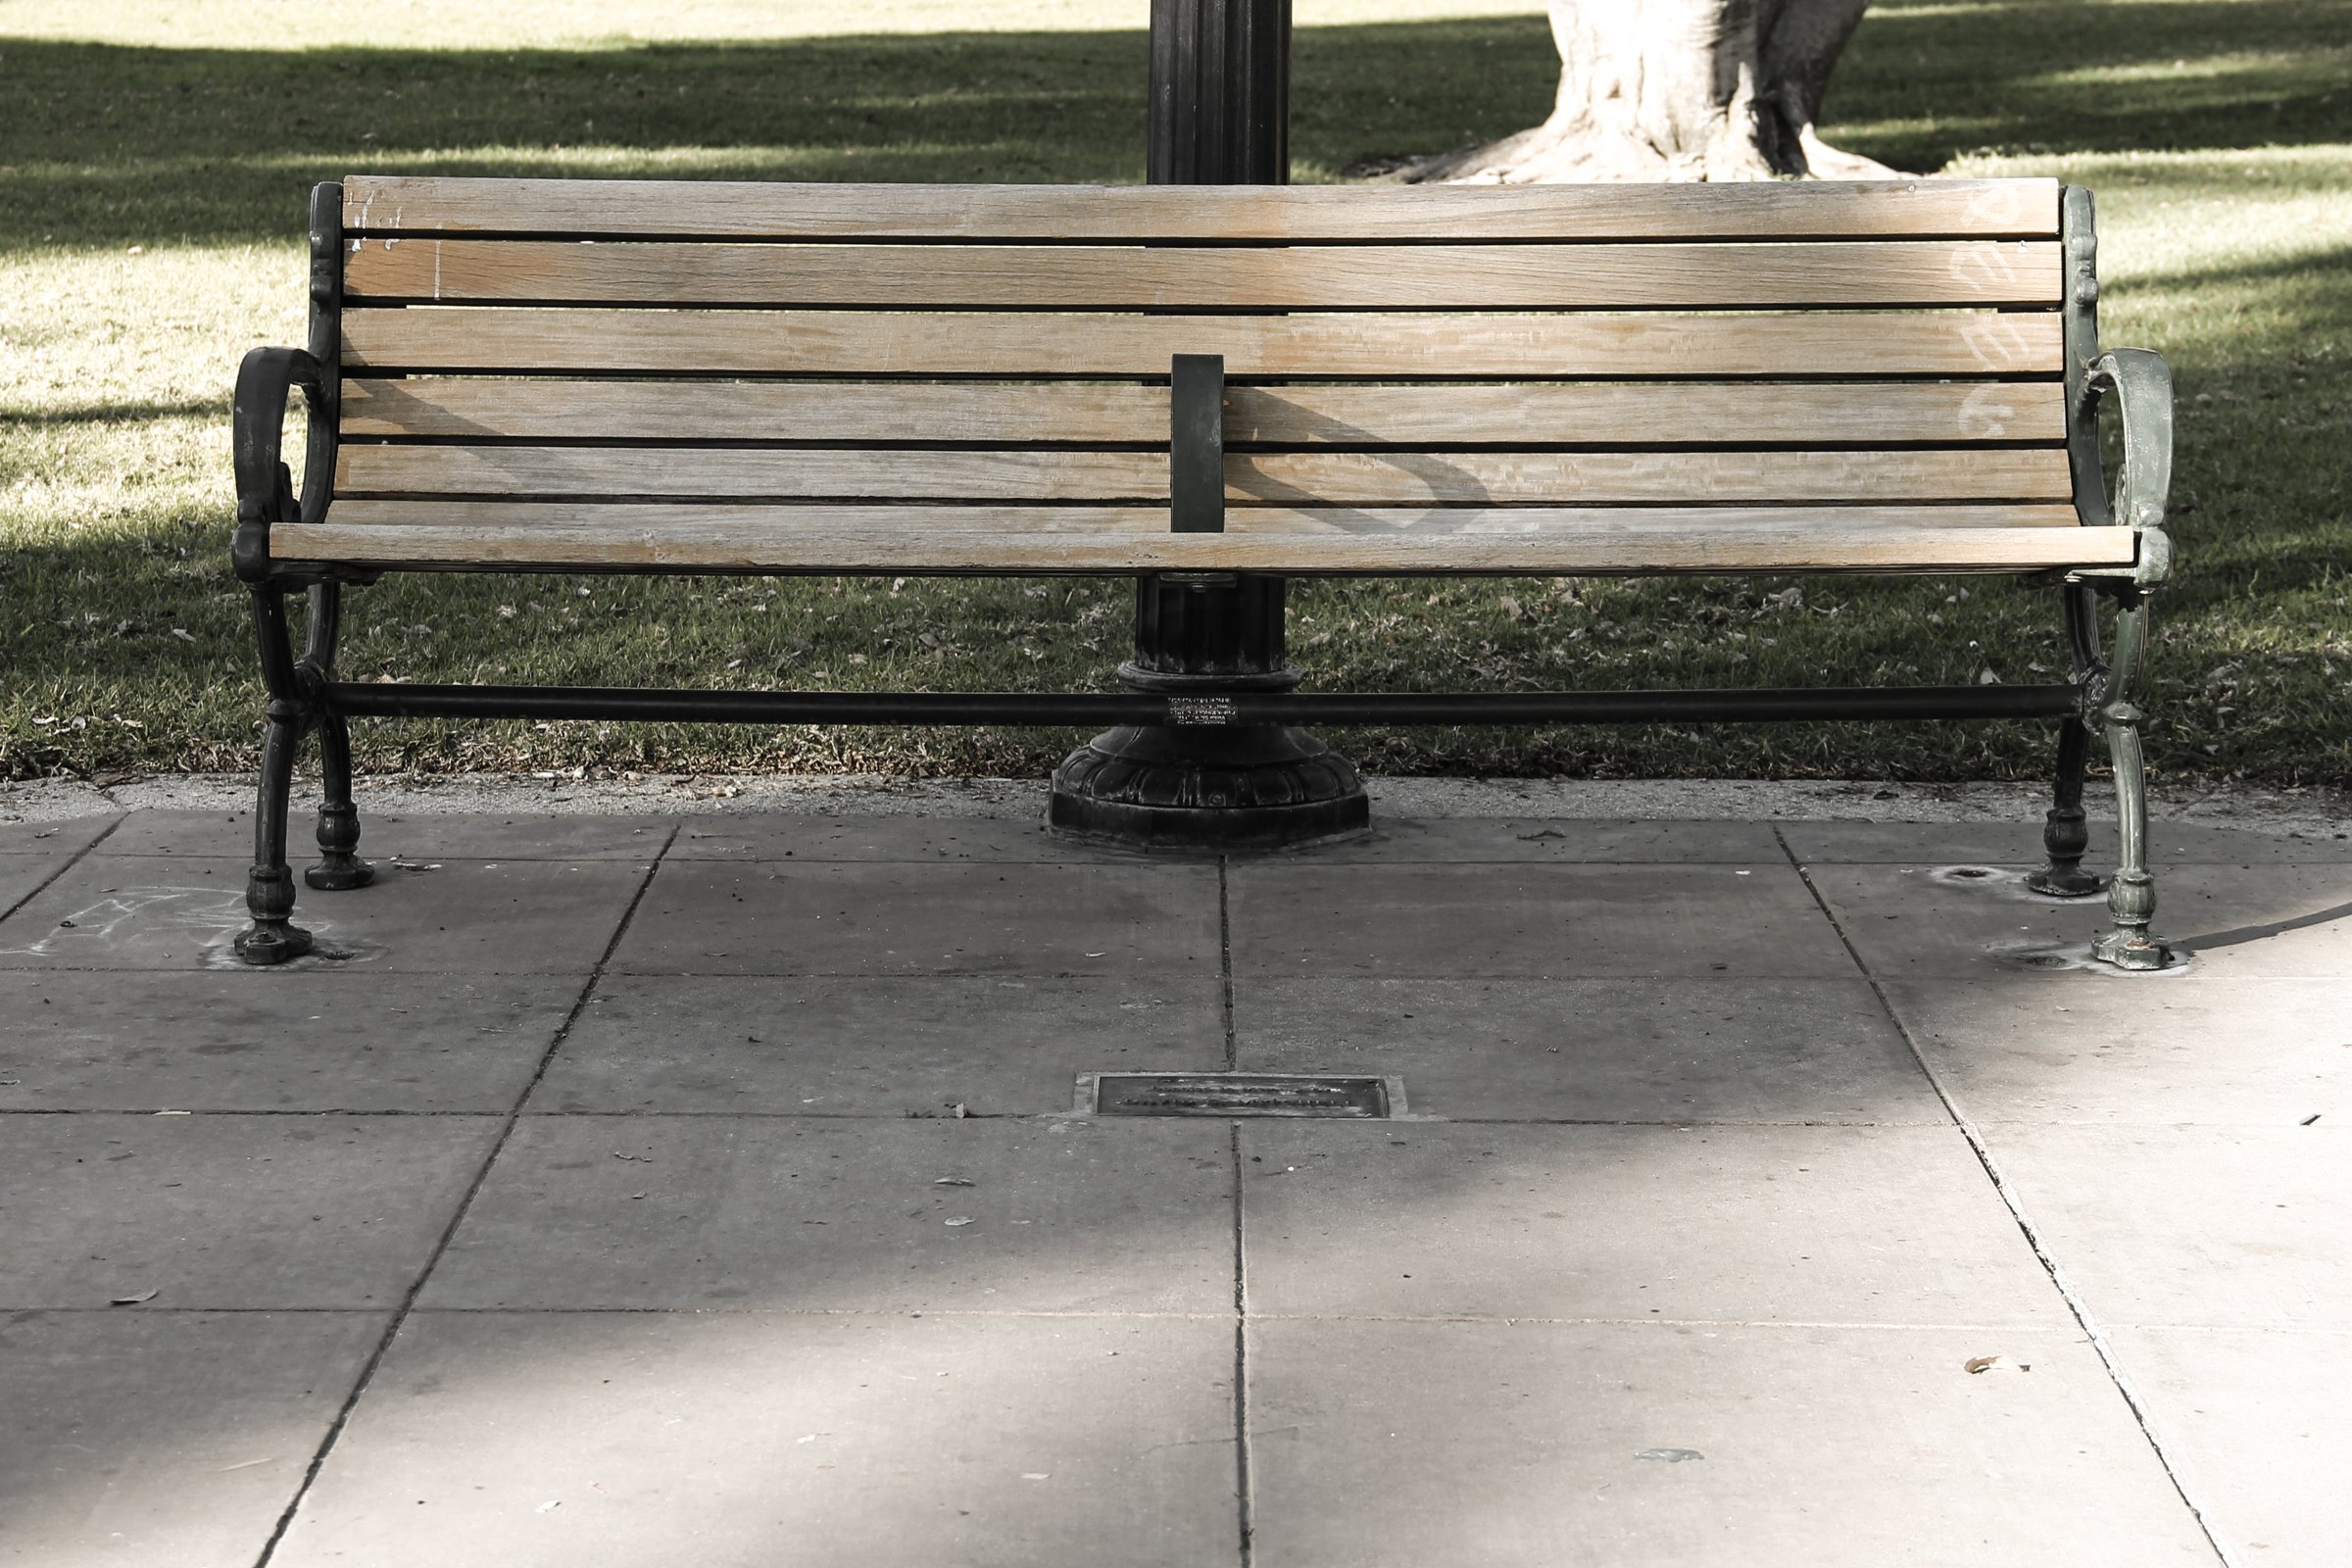 Wood Park Bench ~ Free stock photo of empty wooden park bench